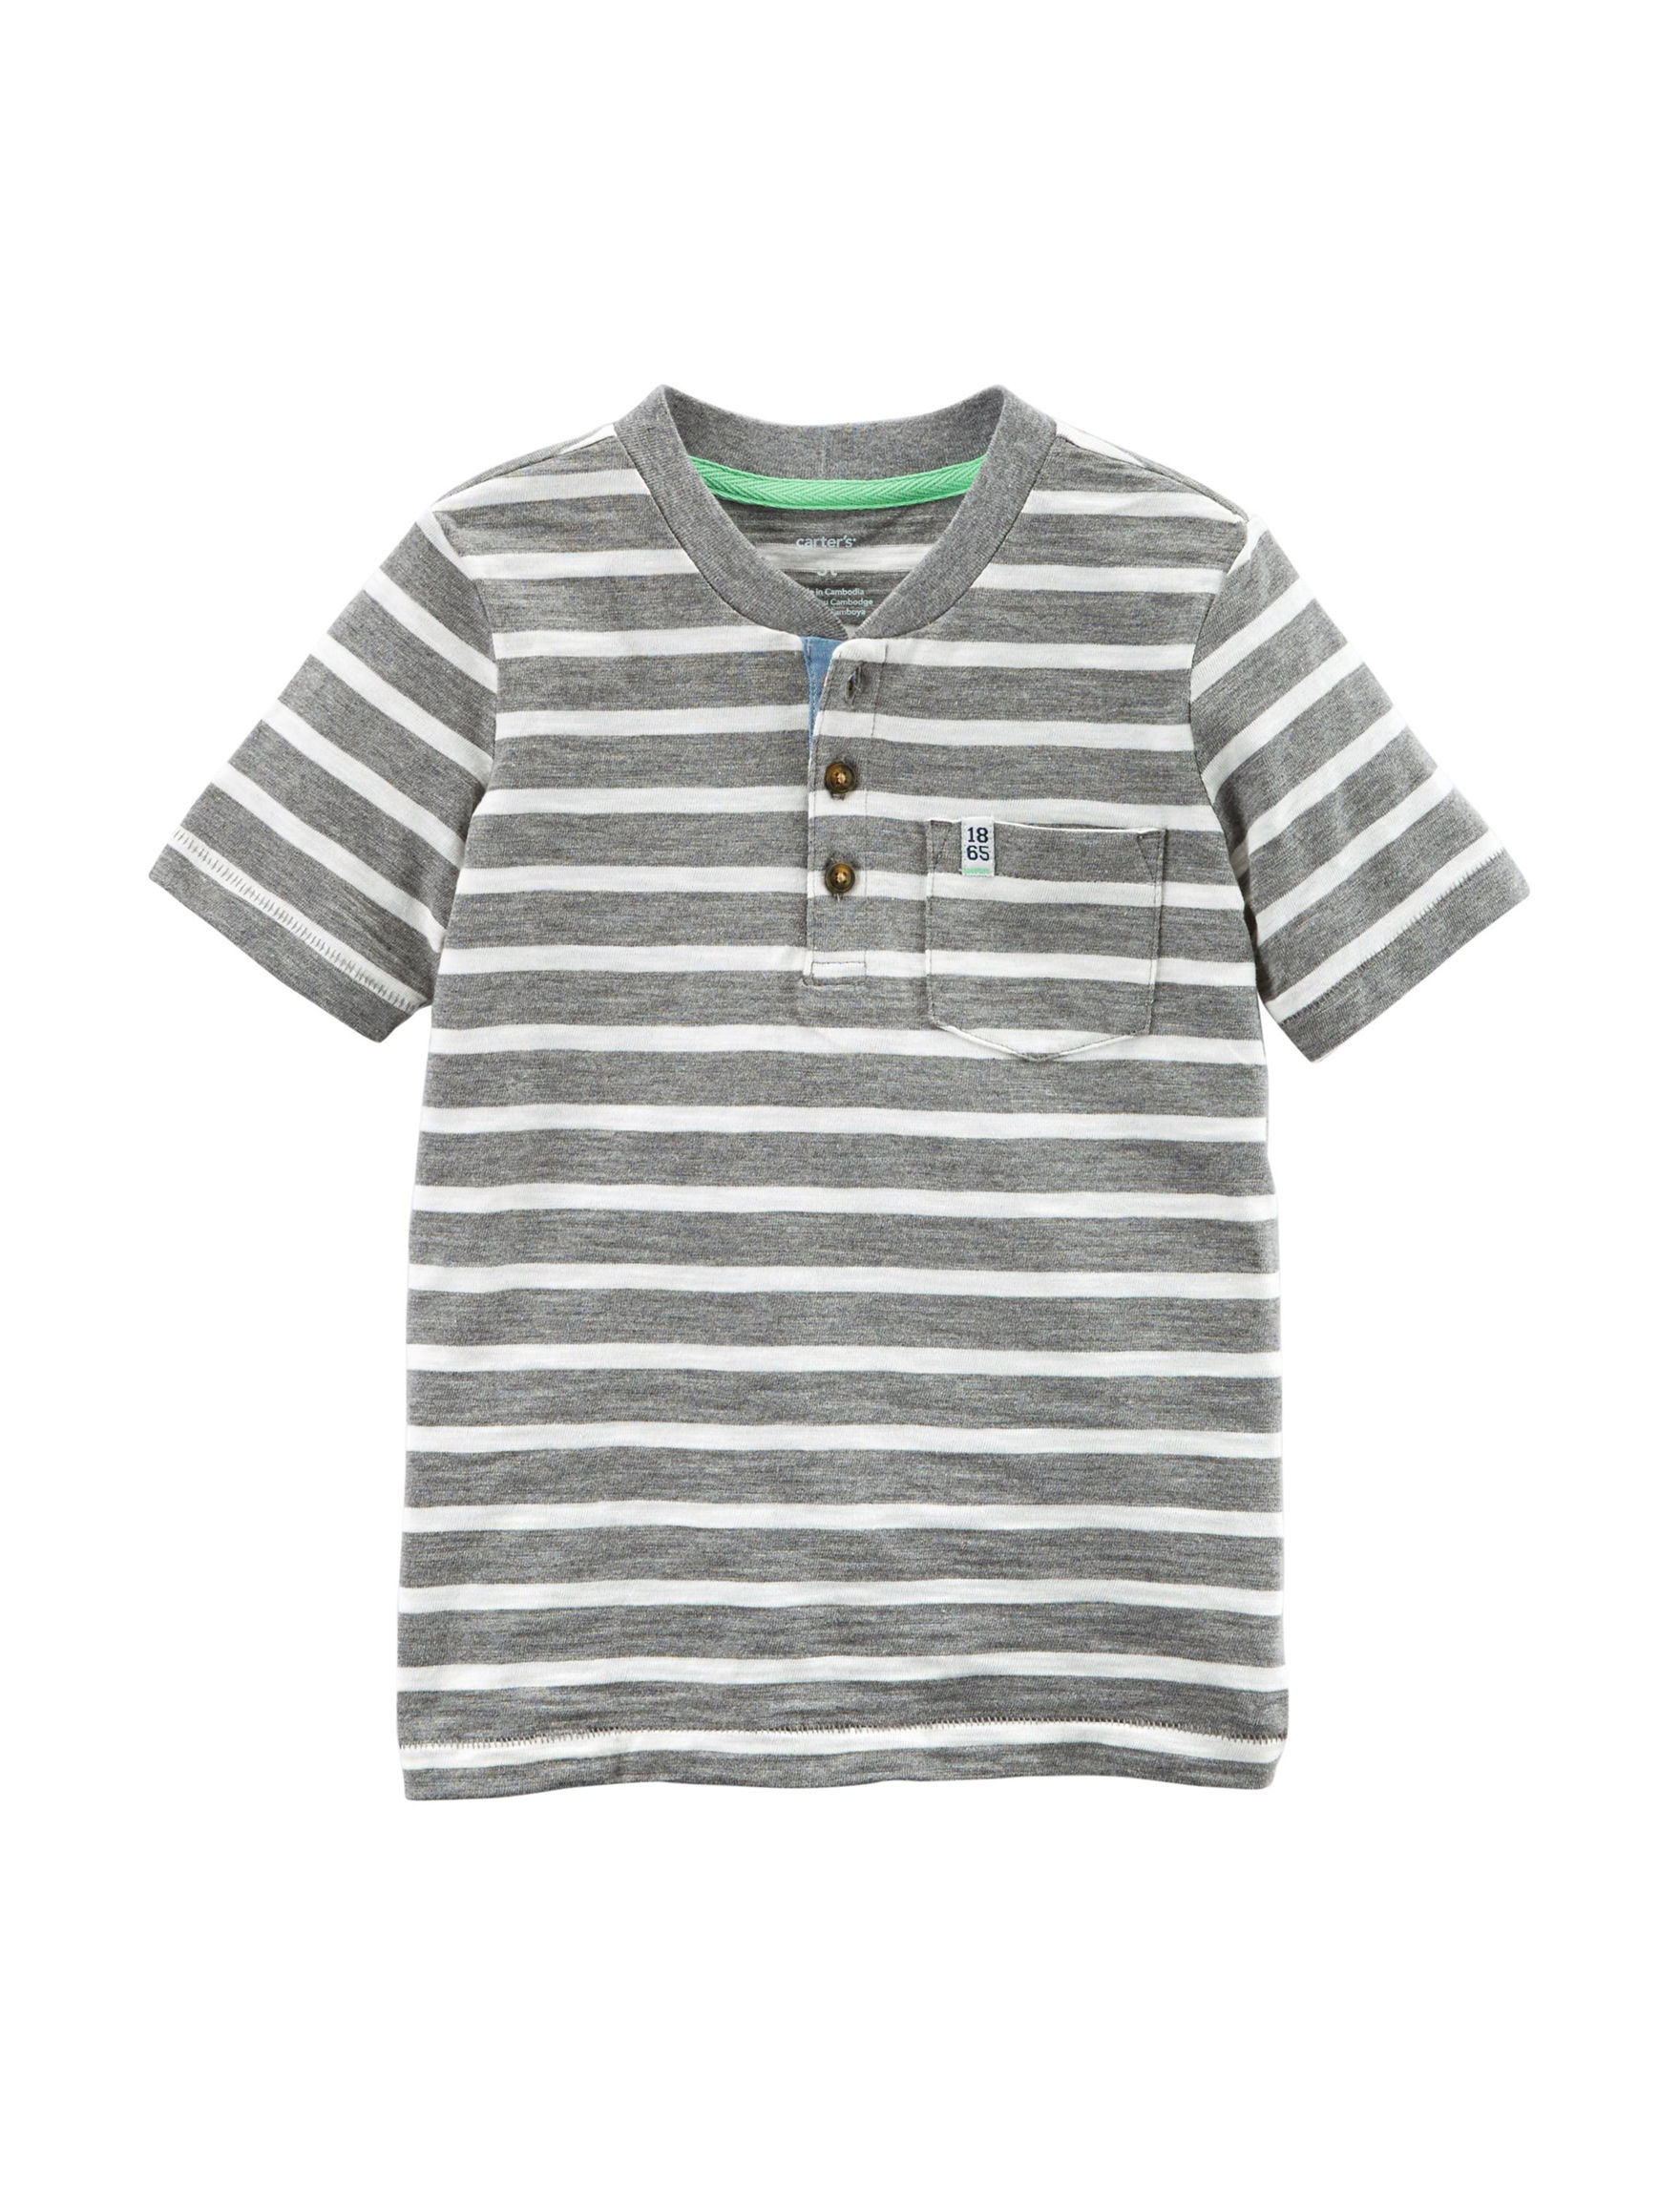 Carter's Grey Stripe